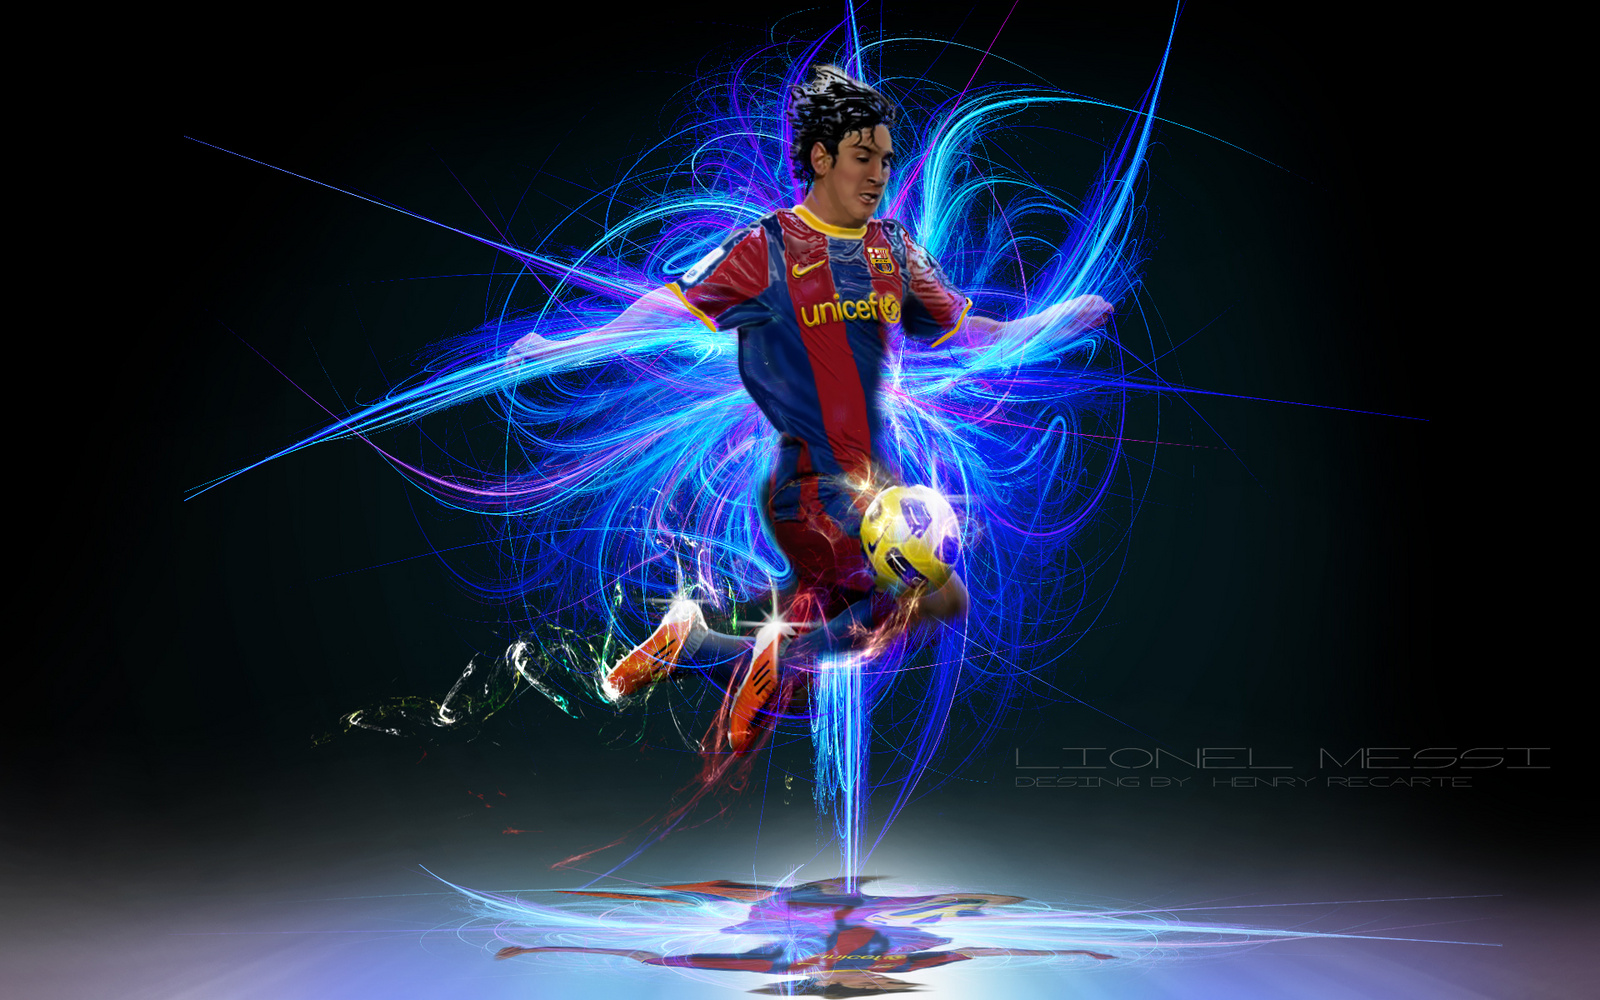 Lionel Messi Wallpapers HD Wallpaper  1600x1000